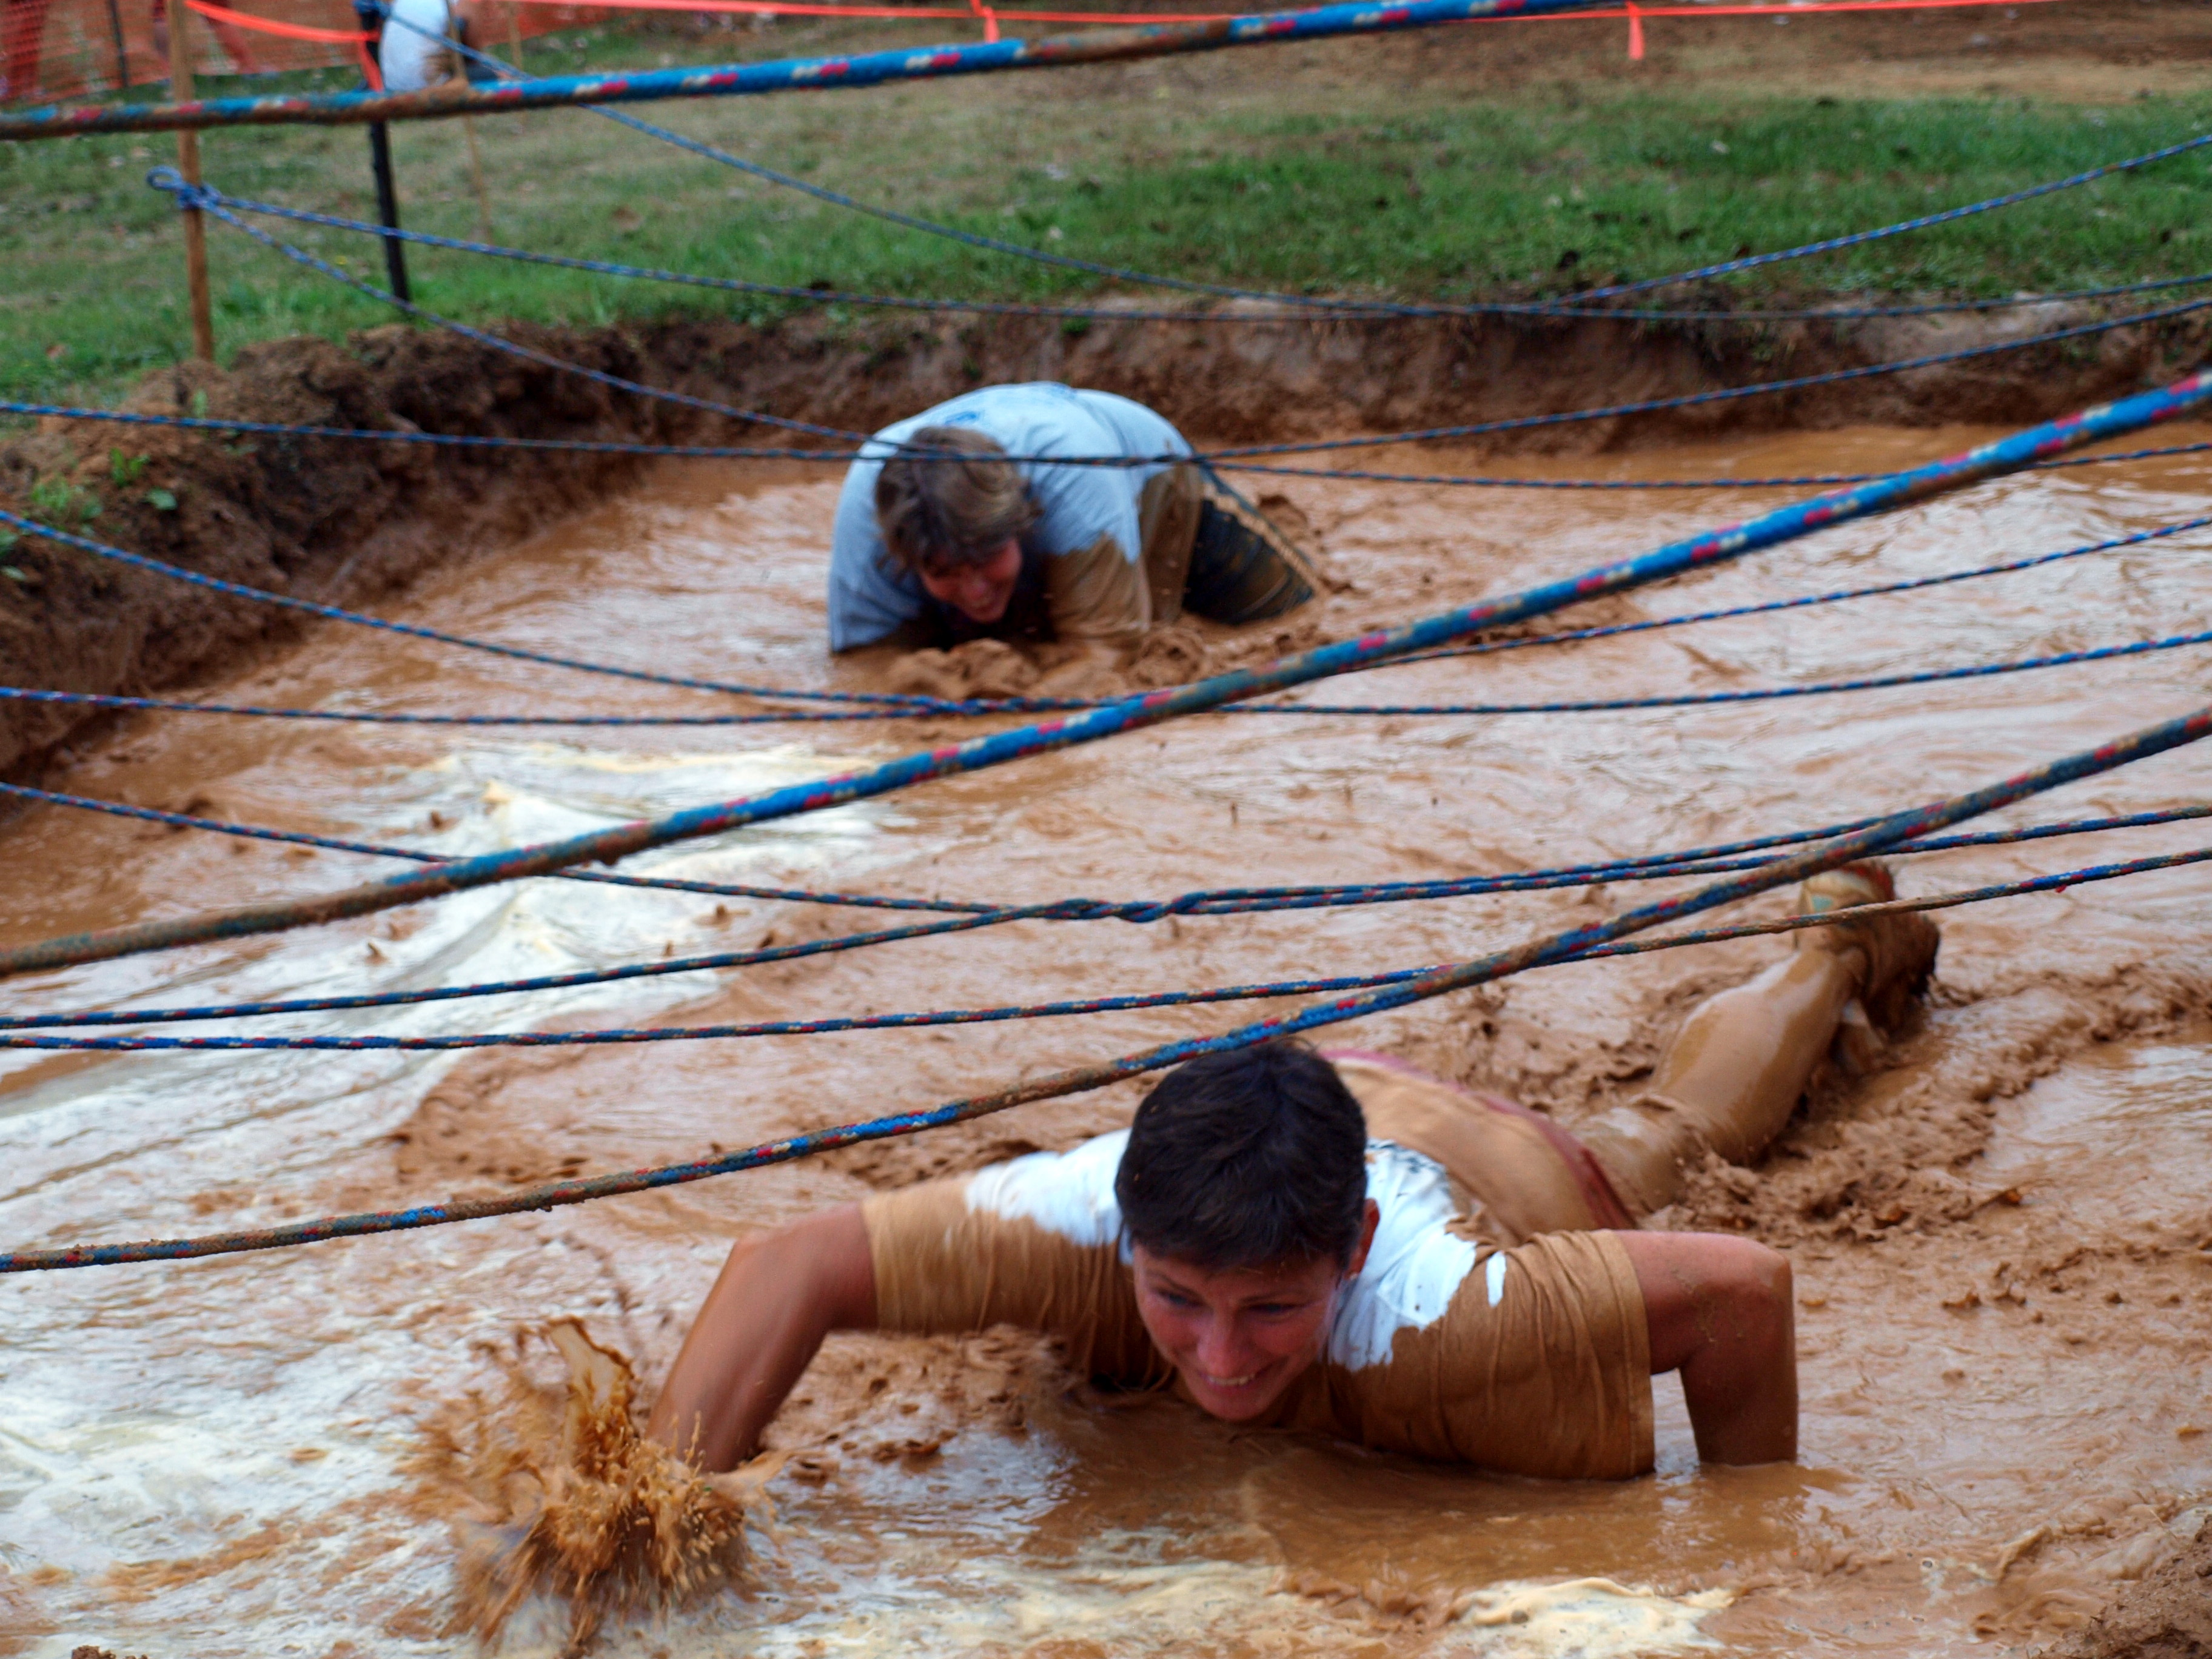 Crawling in the mud